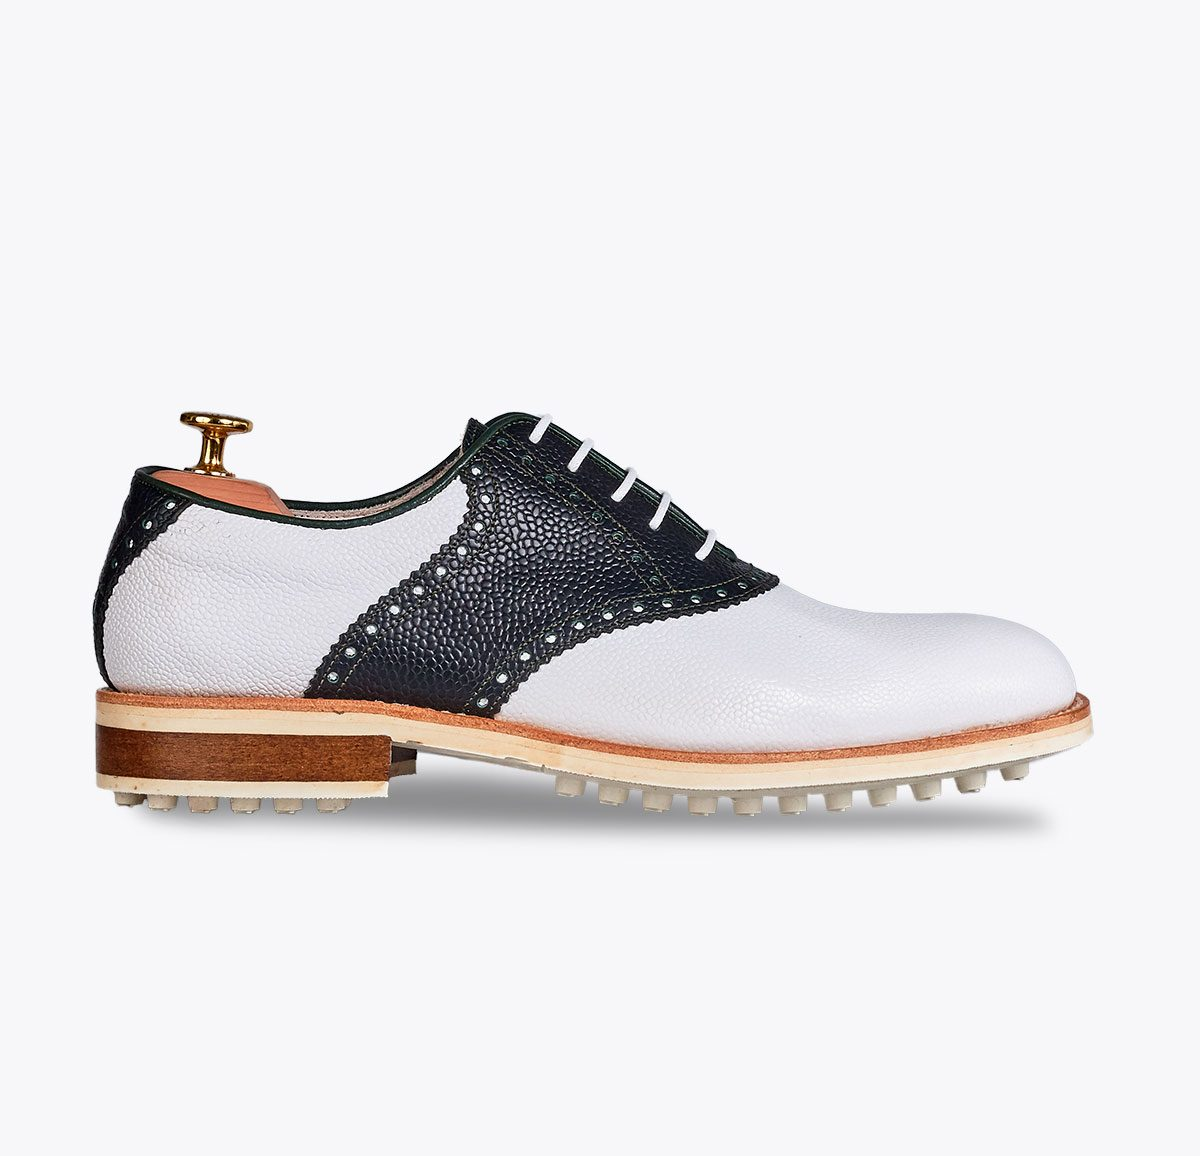 Zapato de golf Portil, tailor made shoes, schuhe nach mass en mandalashoes Santanyí Mallorca